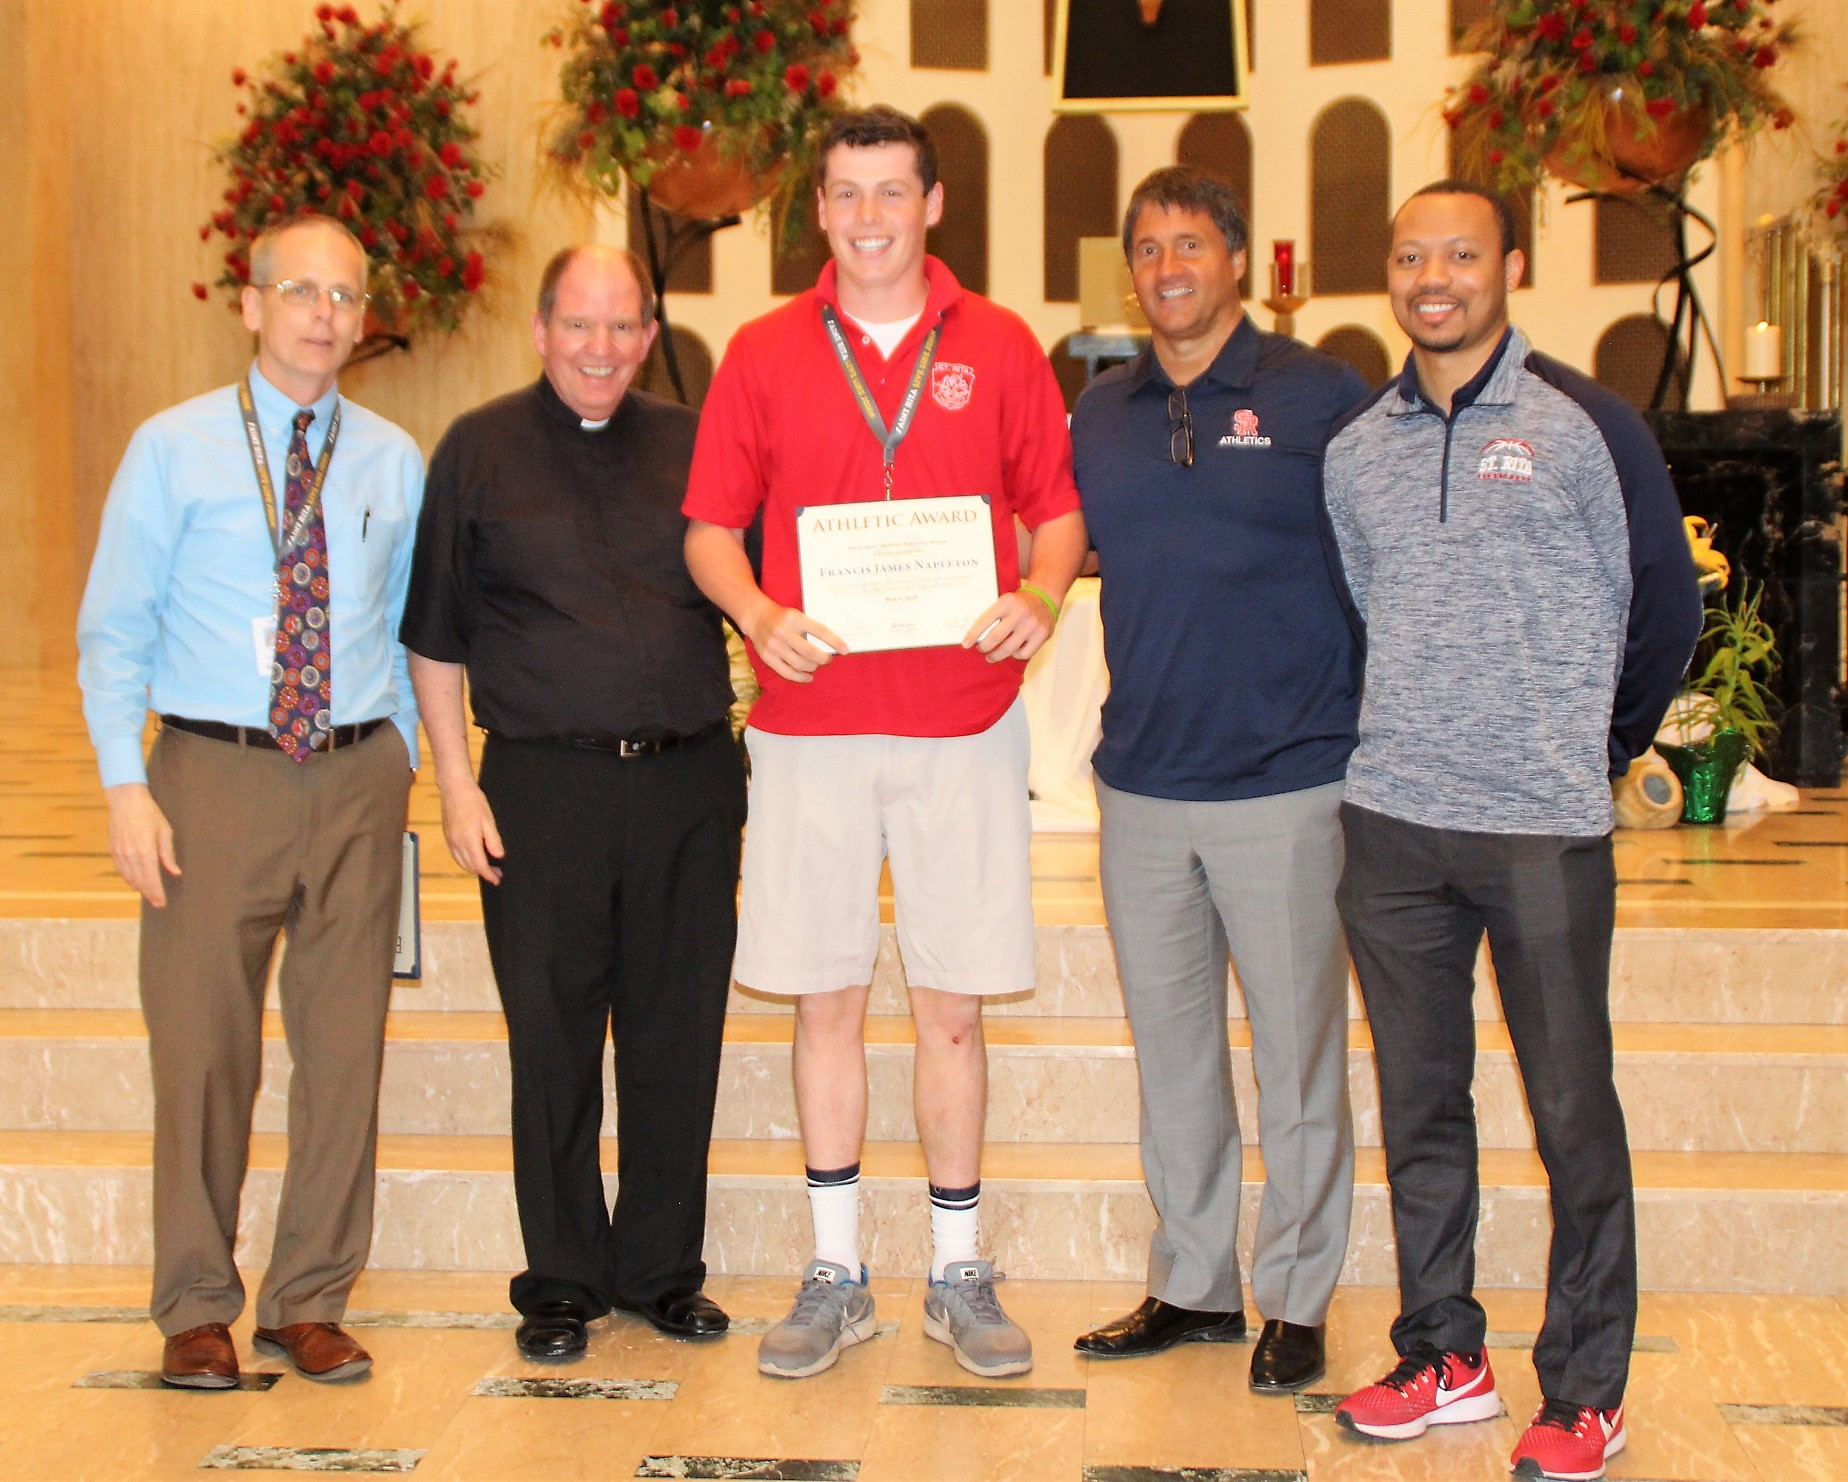 The James L. Misiora Athletic Award is given in recognition of athletic achievement at St. Rita of Cascia High School during one's high school athletic career. The recipient is: Frank Napleton.